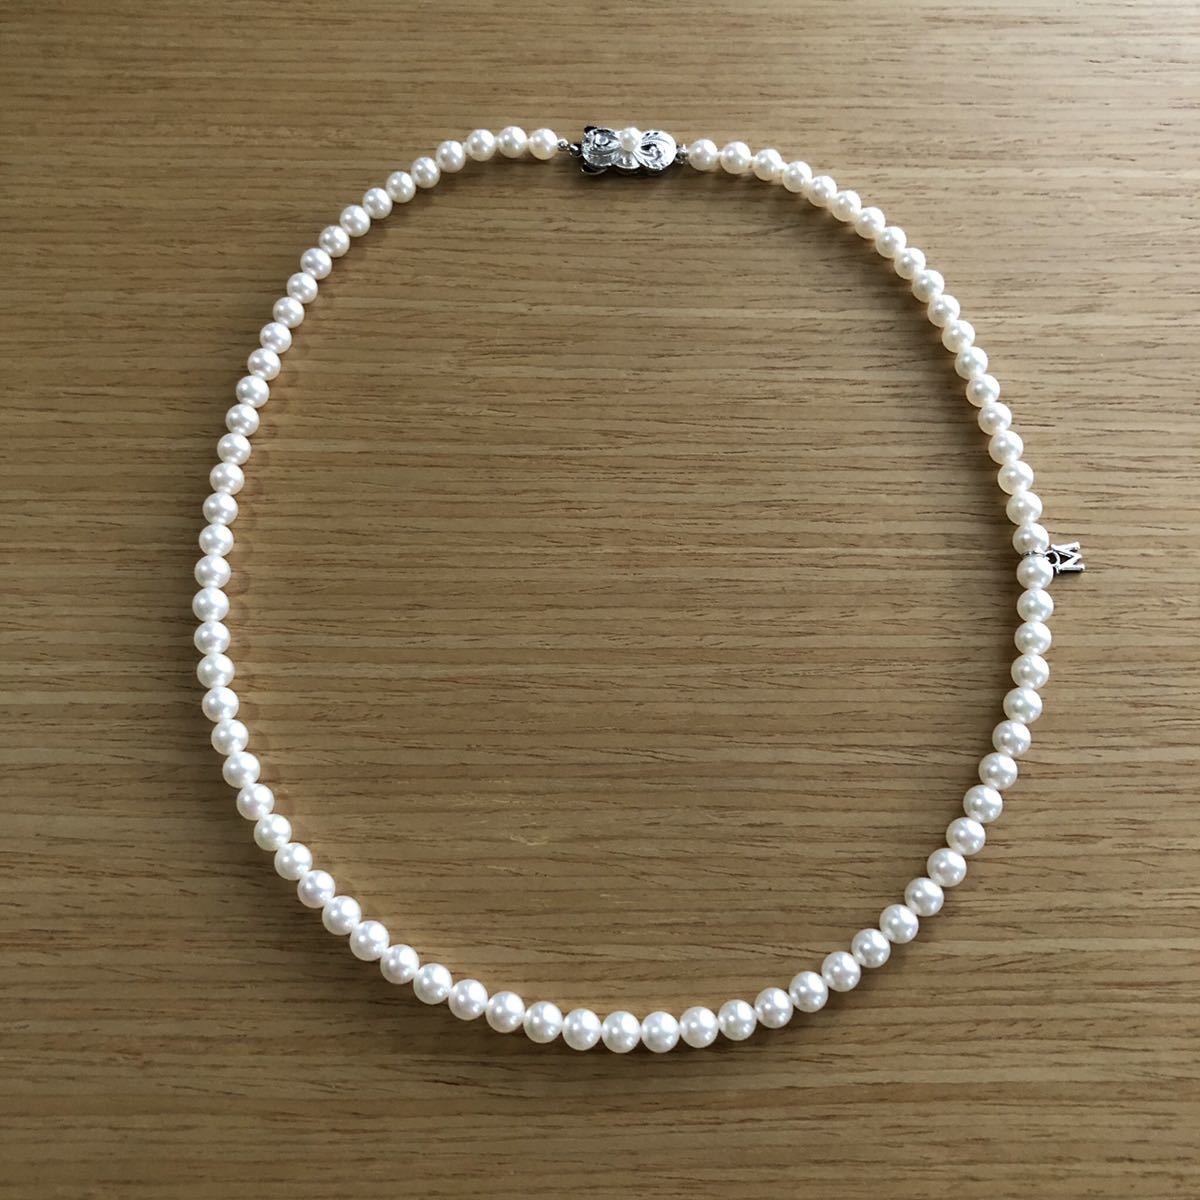 MIKIMOTO ミキモト アコヤパールネックレス SIL 5mm_画像4